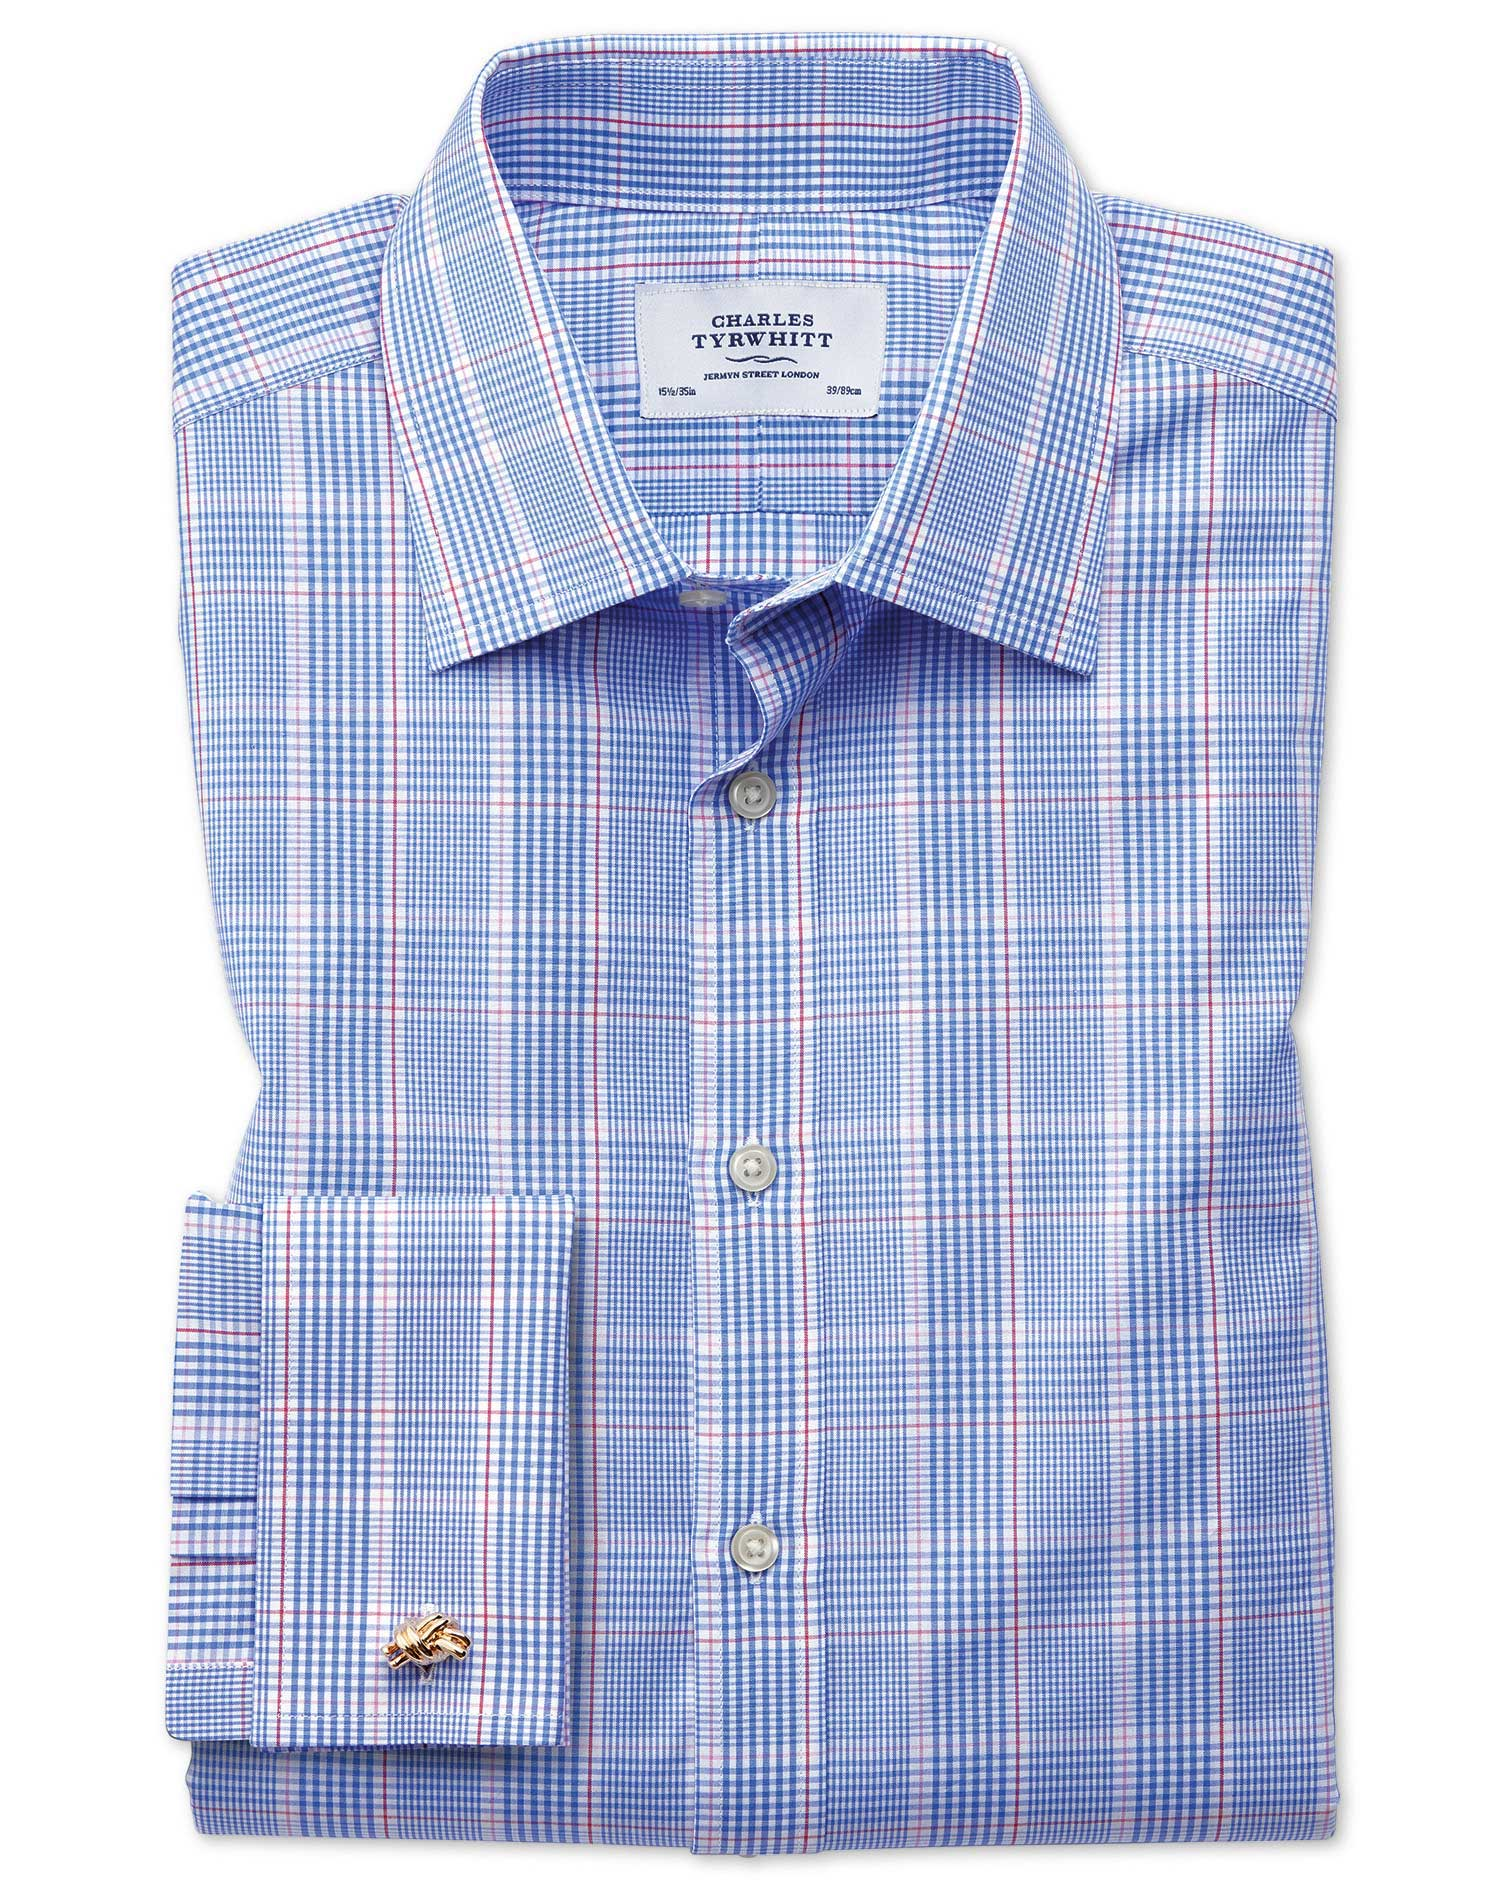 Classic Fit Prince Of Wales Check Blue Cotton Formal Shirt Double Cuff Size 15.5/34 by Charles Tyrwh